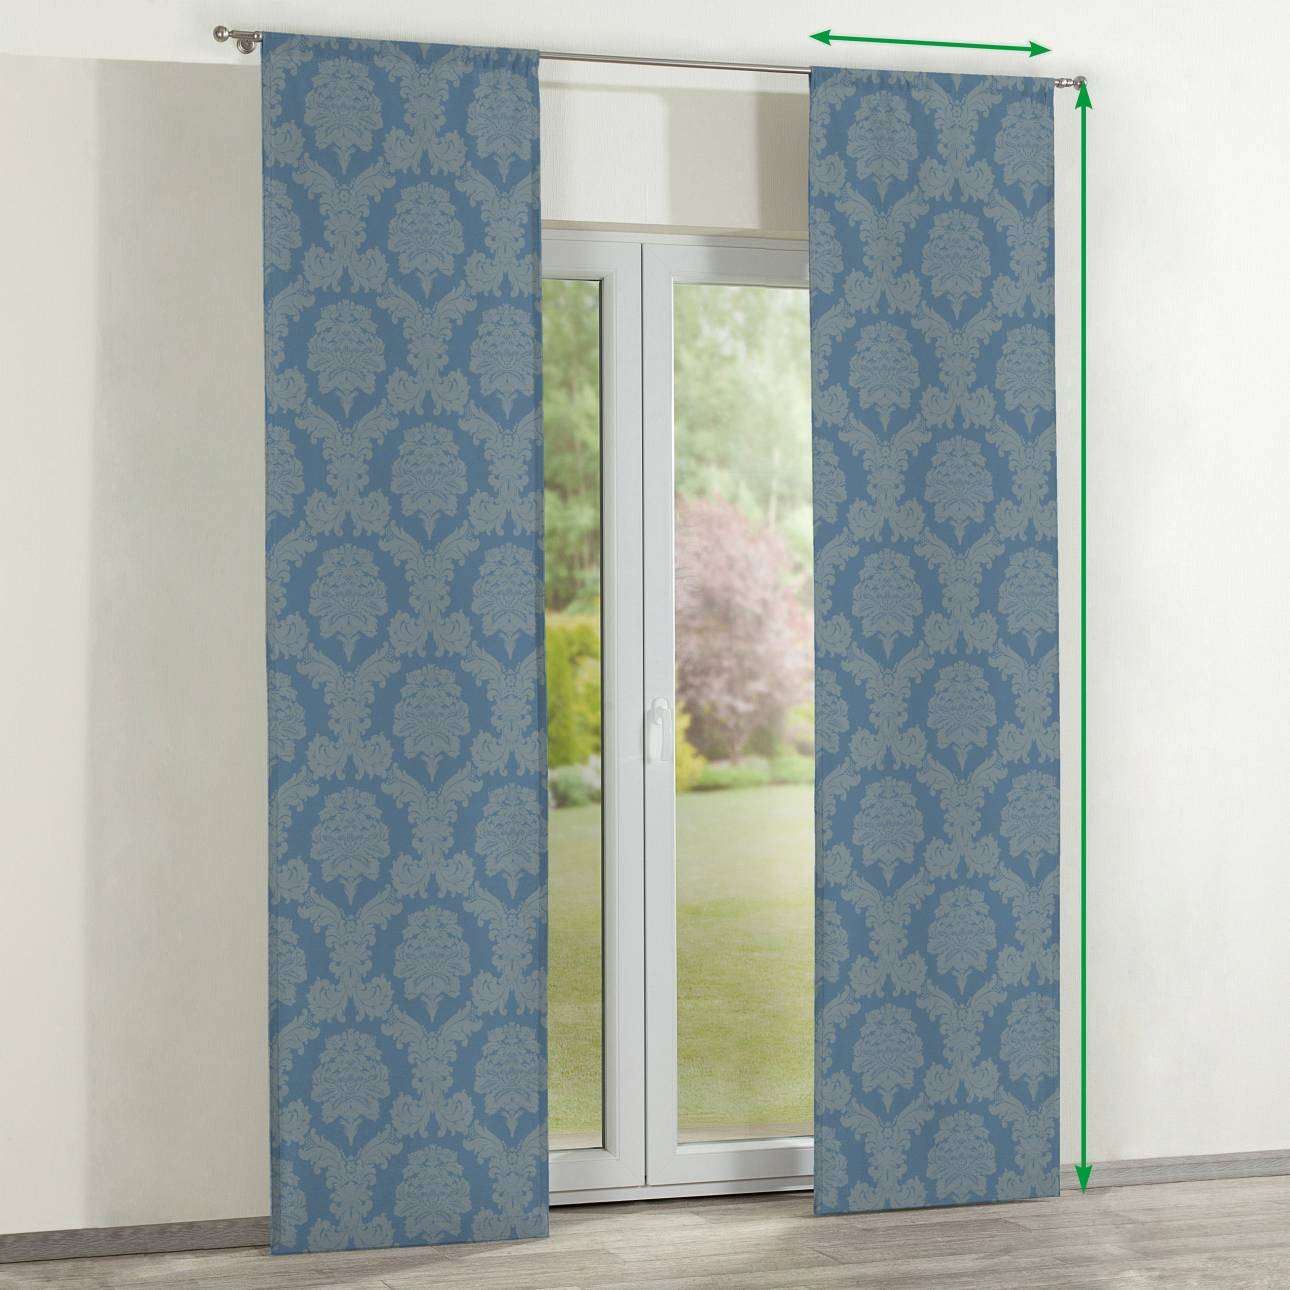 Slot panel curtains – Set of 2 in collection Damasco, fabric: 613-67